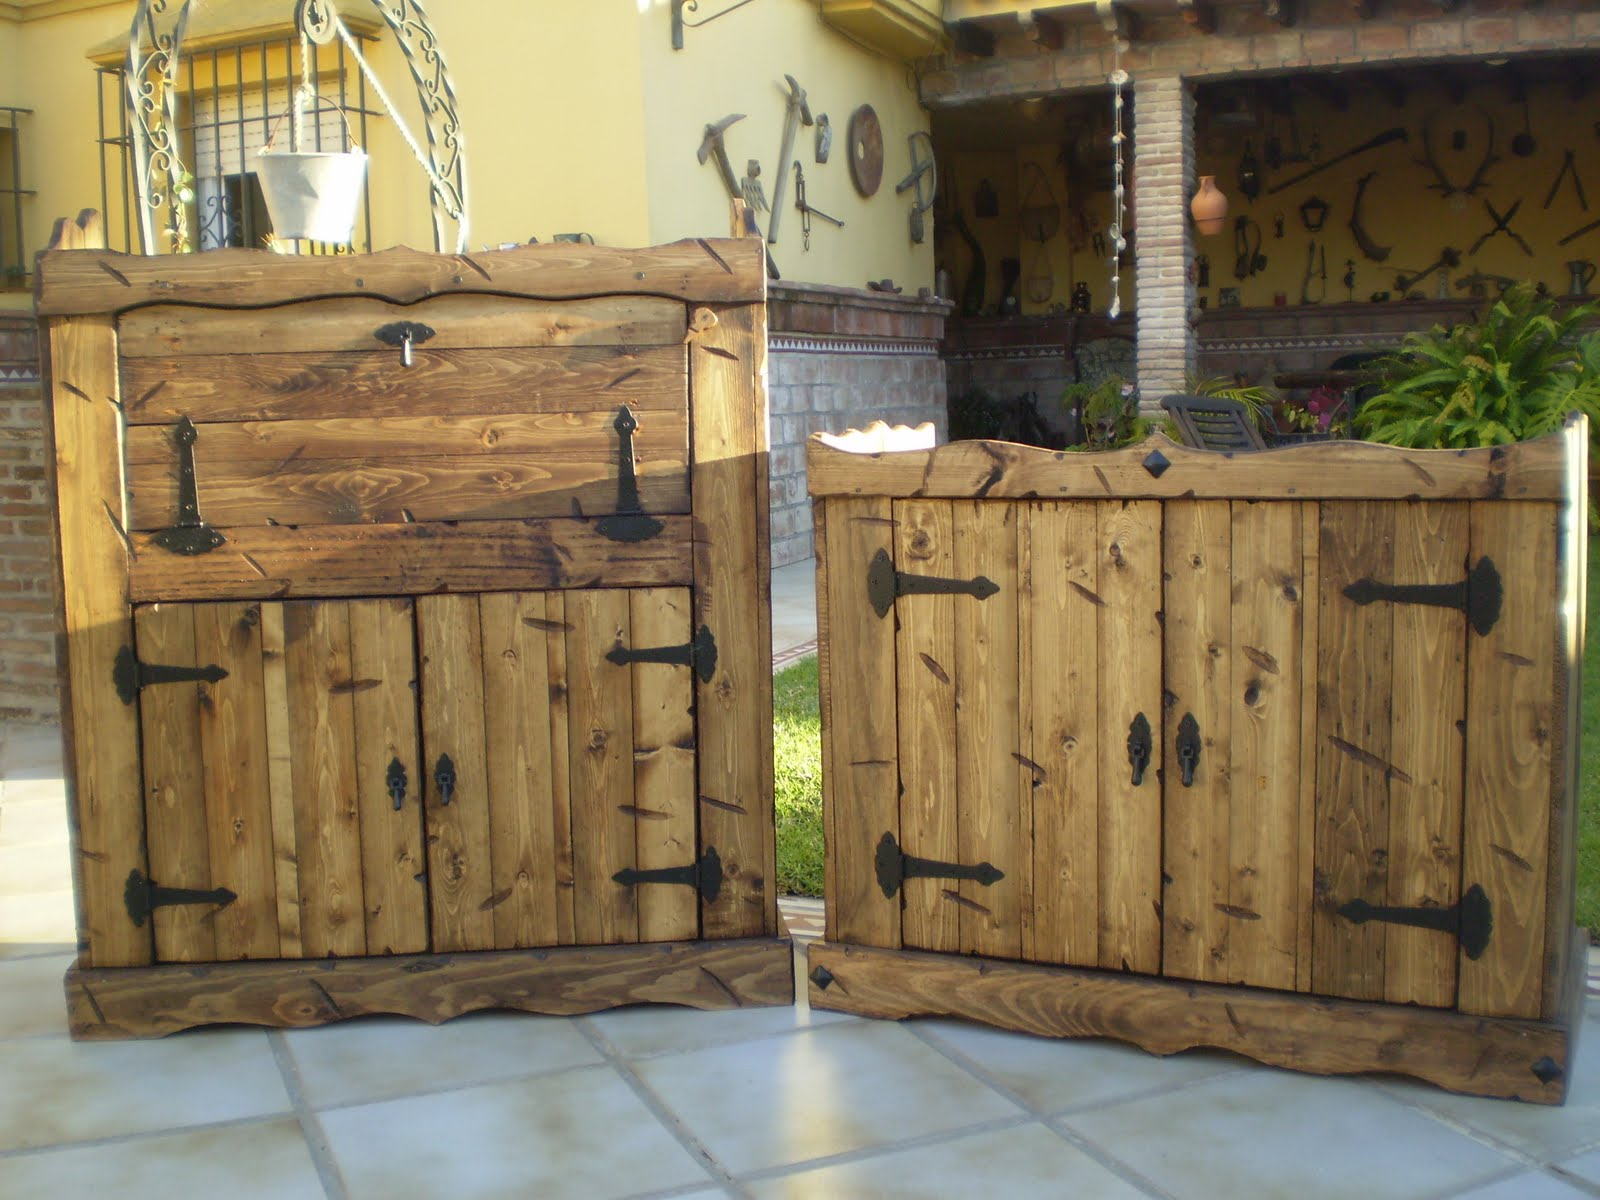 Pin fotos muebles rusticos hechos durmiente portal on for Pinterest muebles